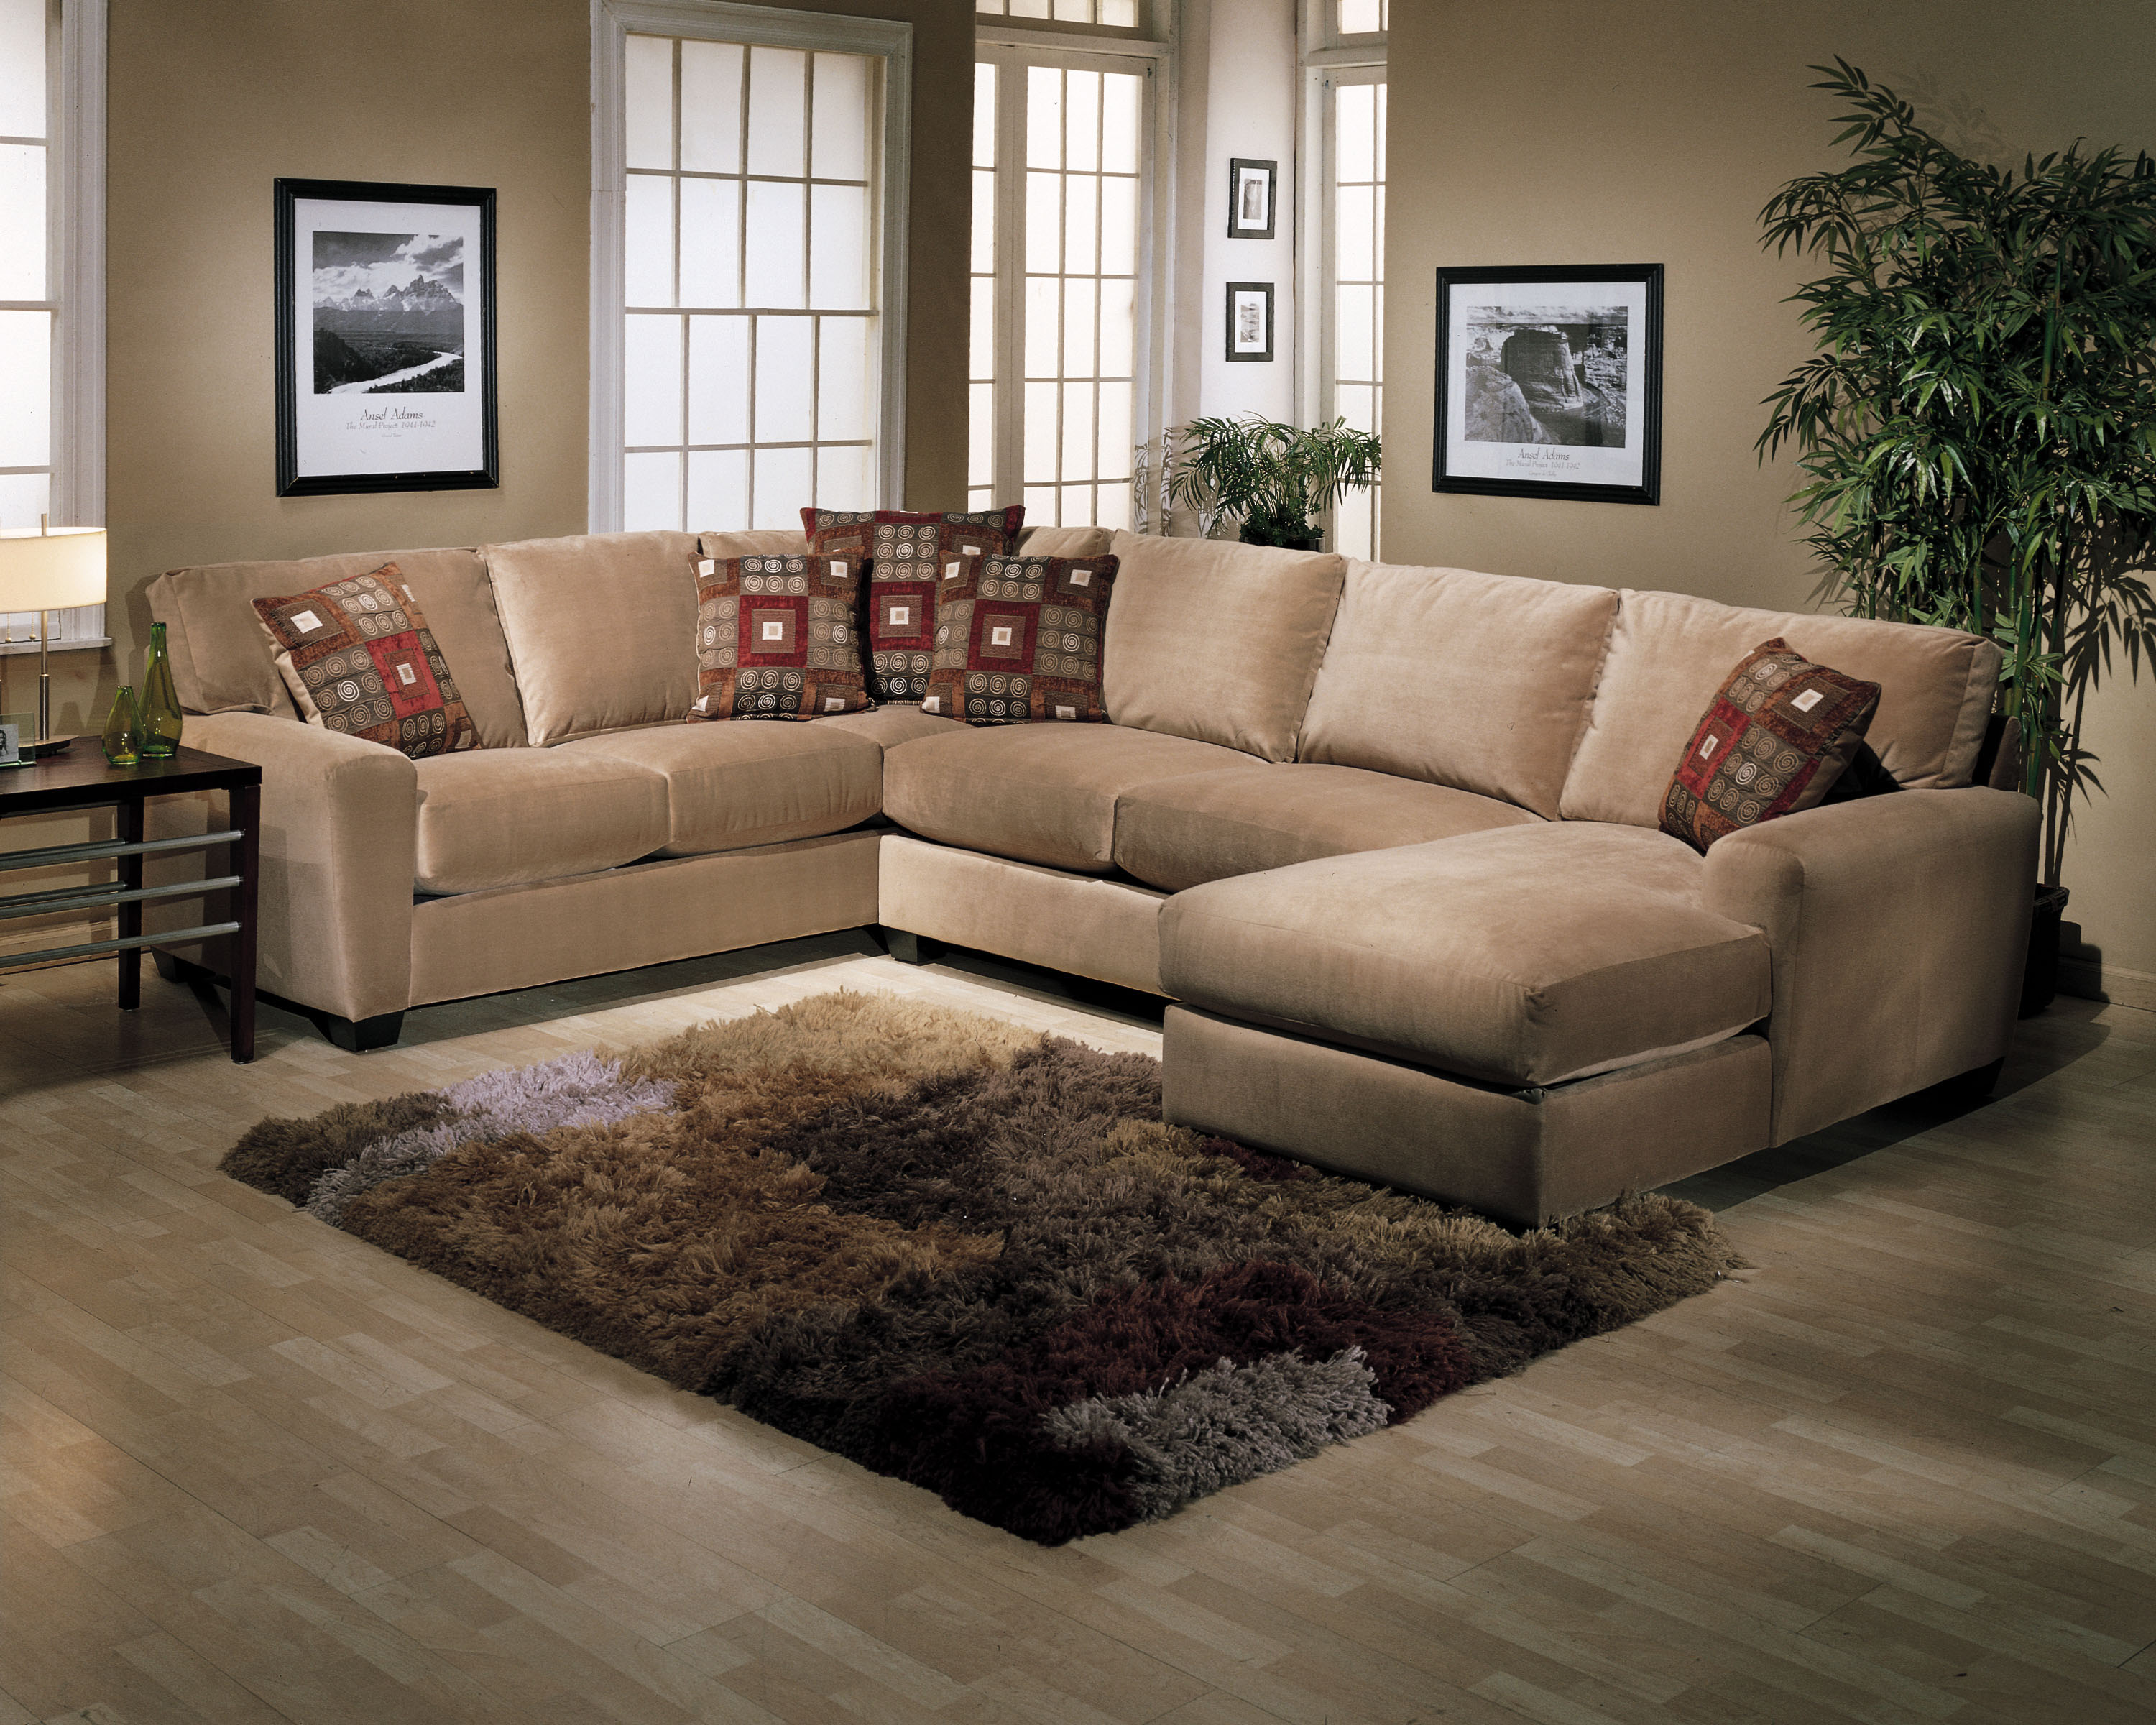 microfiber sofas overstuffed and chairs cleaning couch real life friends deal clean how do i